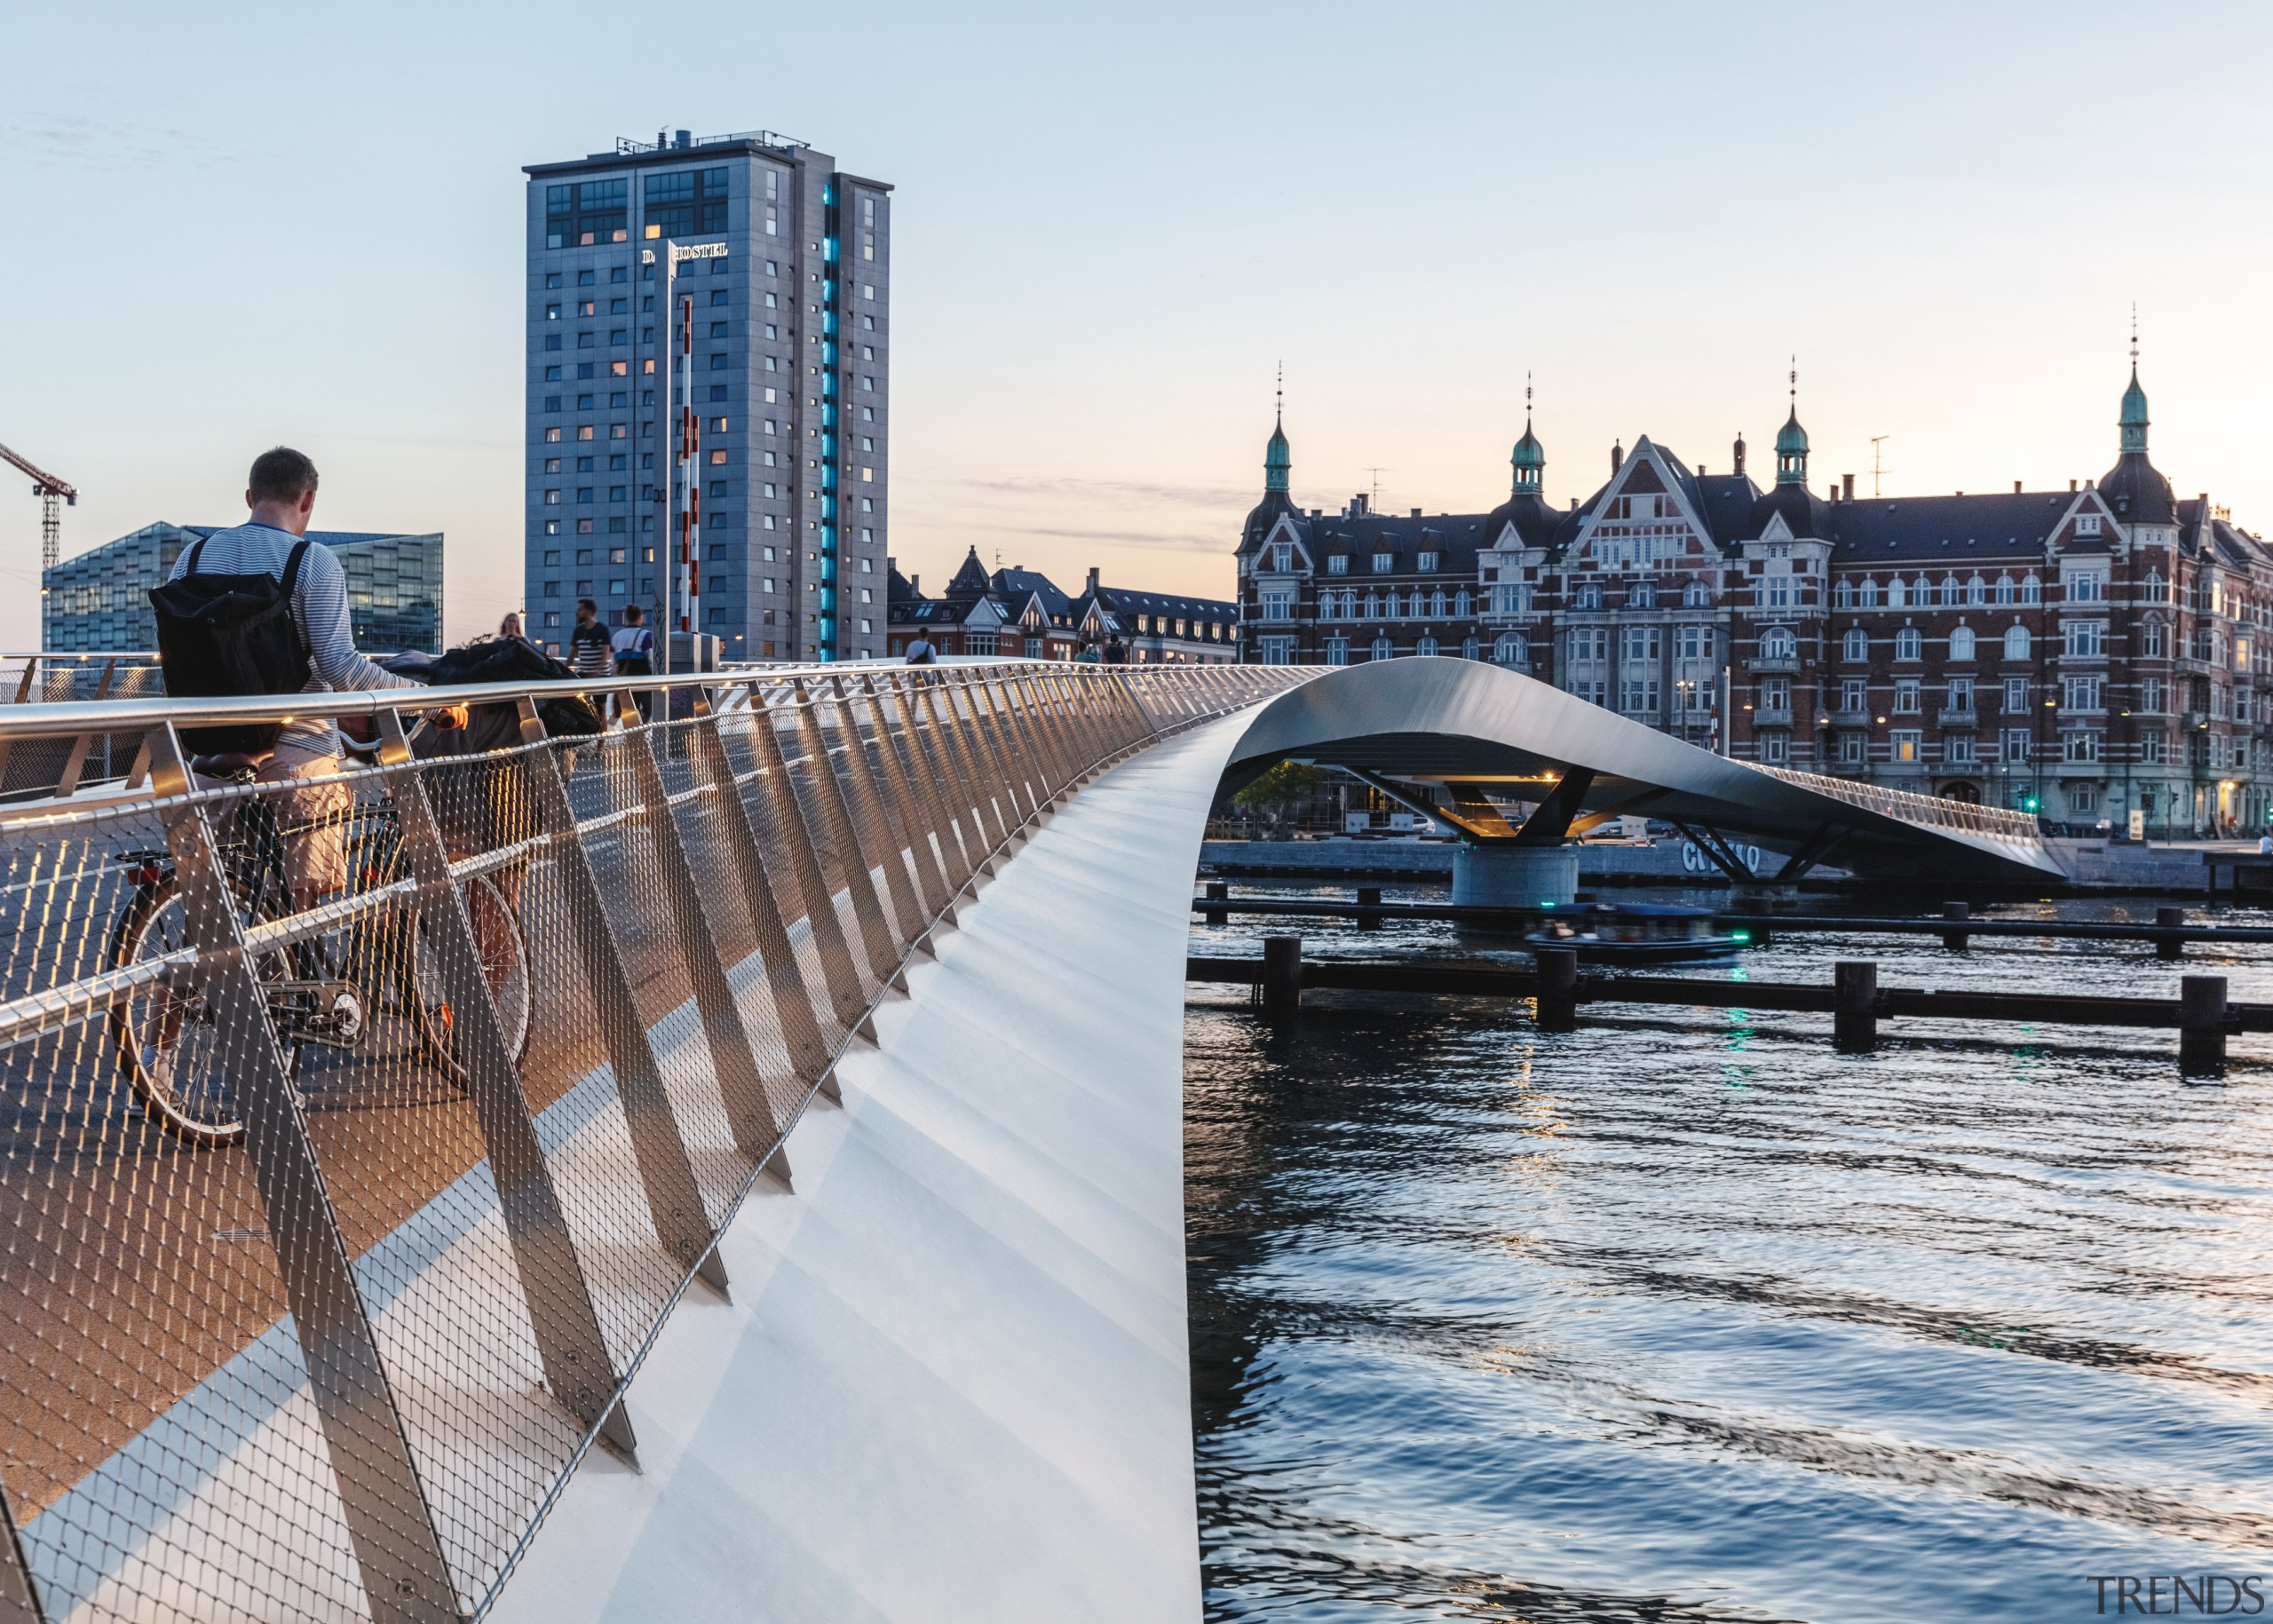 The flowing bridge connects with but also contrasts white